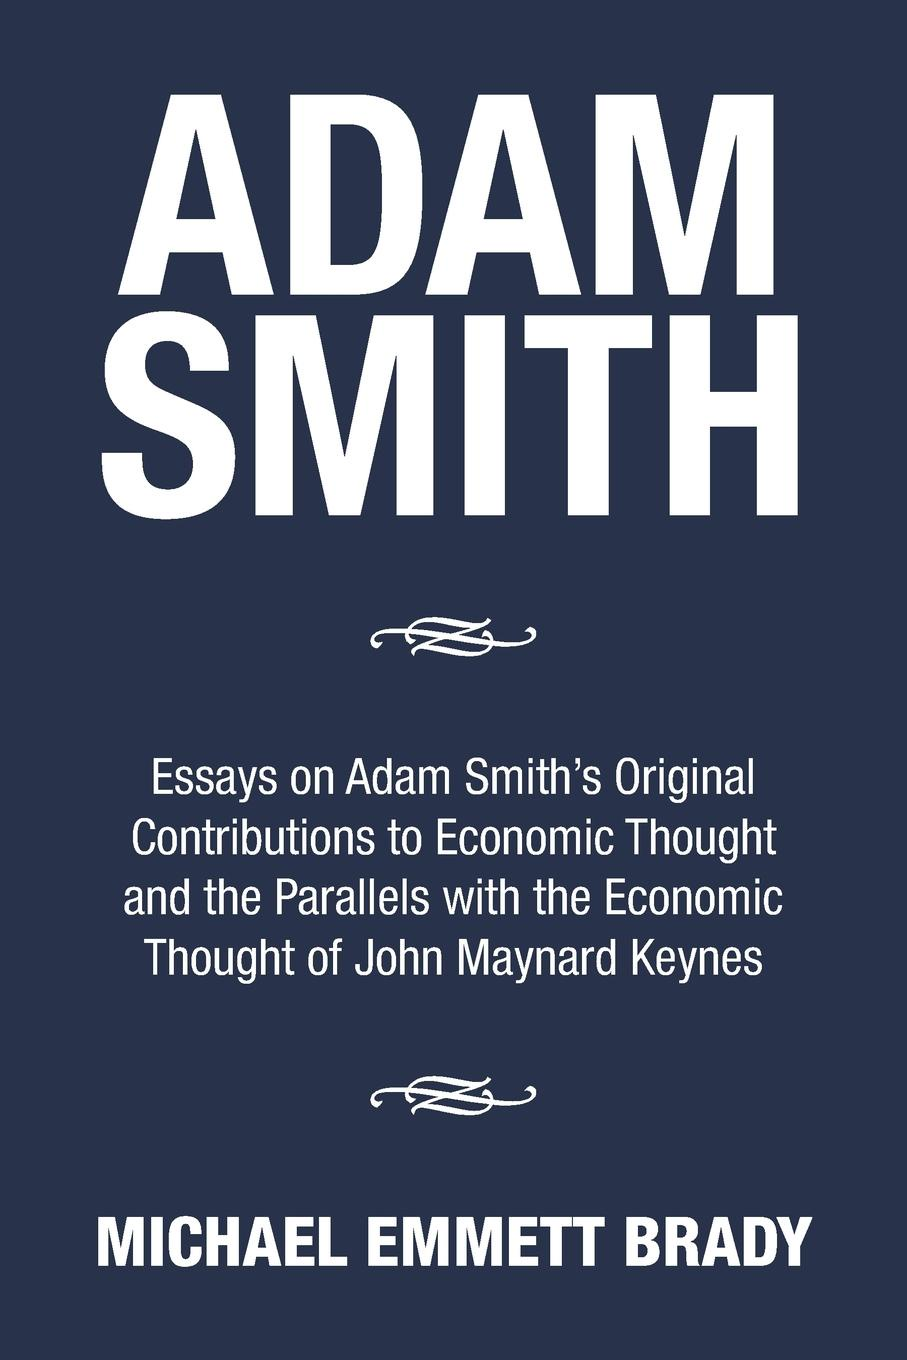 Michael Emmett Brady Adam Smith. Essays on Adam Smith's Original Contributions to Economic Thought and the Parallels with the Economic Thought of John Maynard Keynes lina laubisch debate about alternative monetary systems silvio gesell john maynard keynes irving fisher